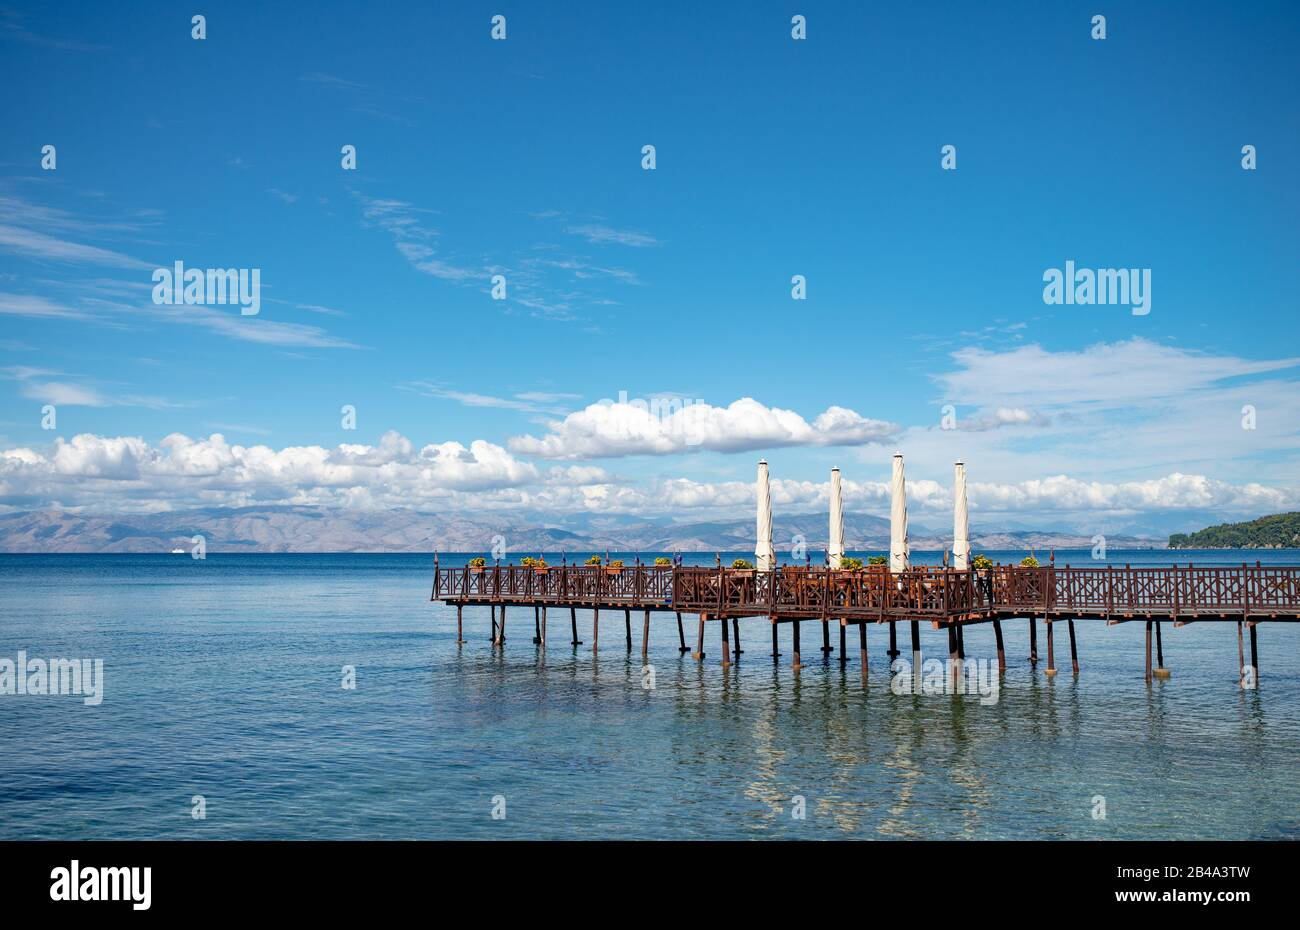 Long wooden pier with romantic cafe in end in Ionian sea. Greece. Beautiful lanscape, mountains on sealine. Sunny day with clouds on Corfu island. Stock Photo